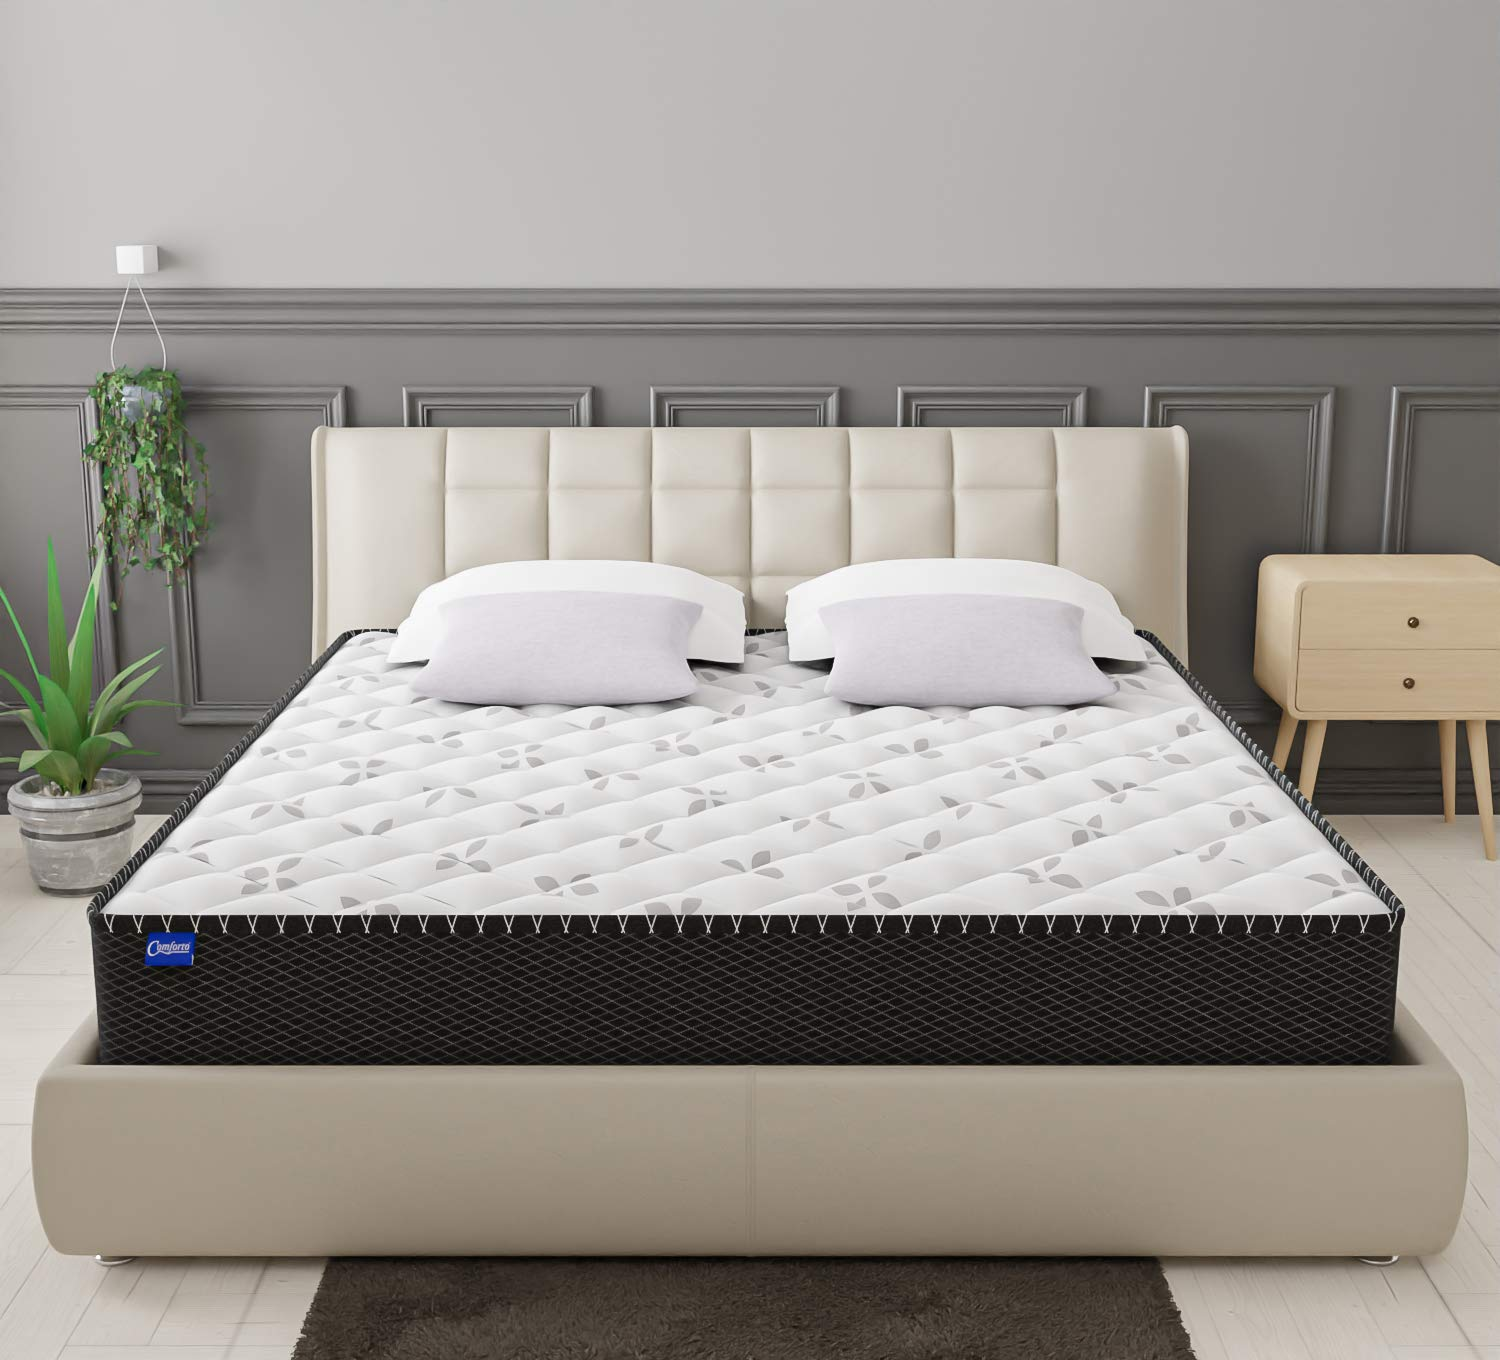 Comforto Hybrid 8 Inch King Size Pocket Spring with Memory Foam Mattress (78x70x8 Inches)